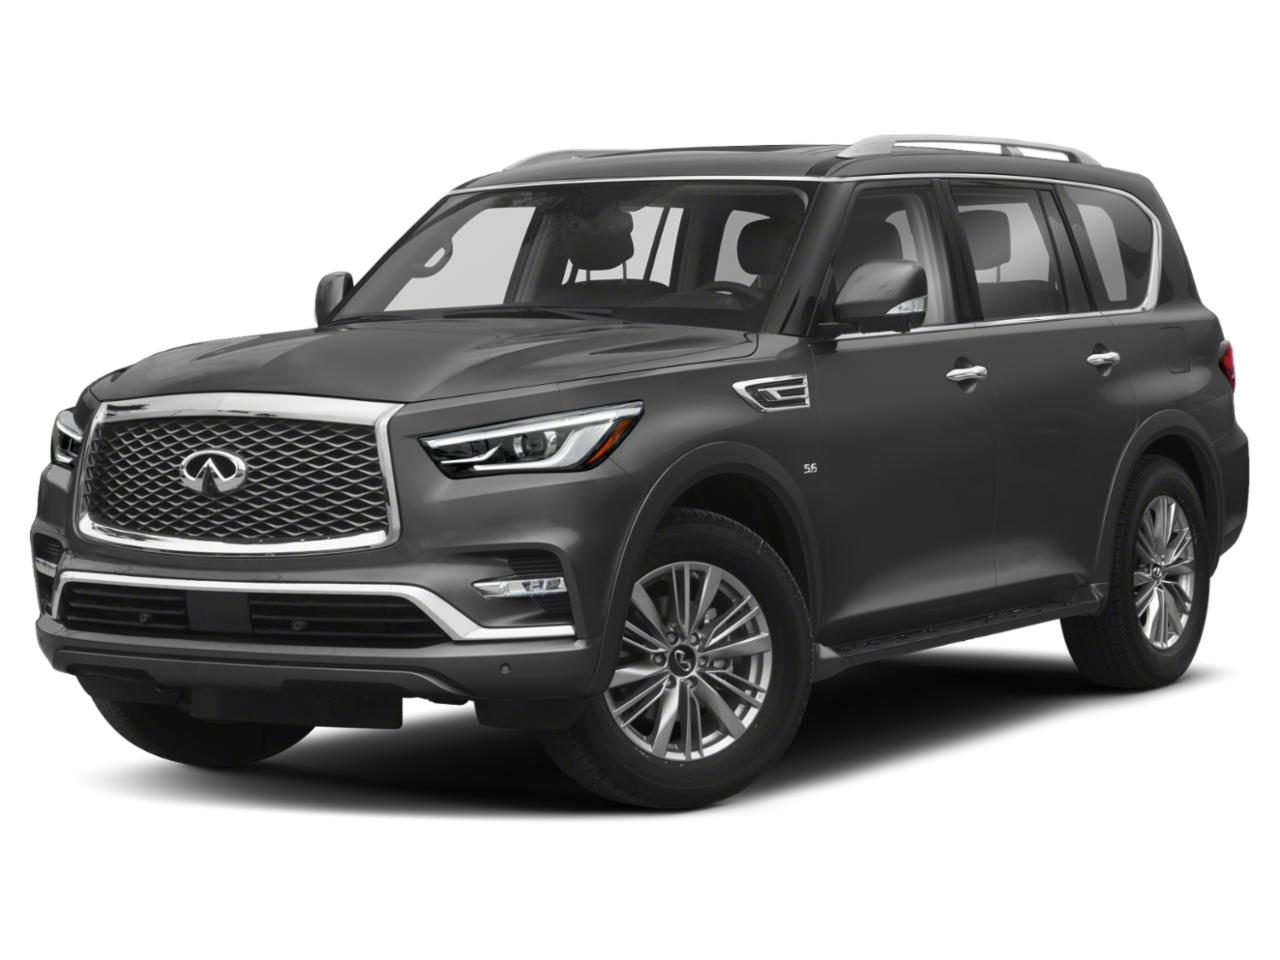 2019 INFINITI QX80 Vehicle Photo in Bowie, MD 20716